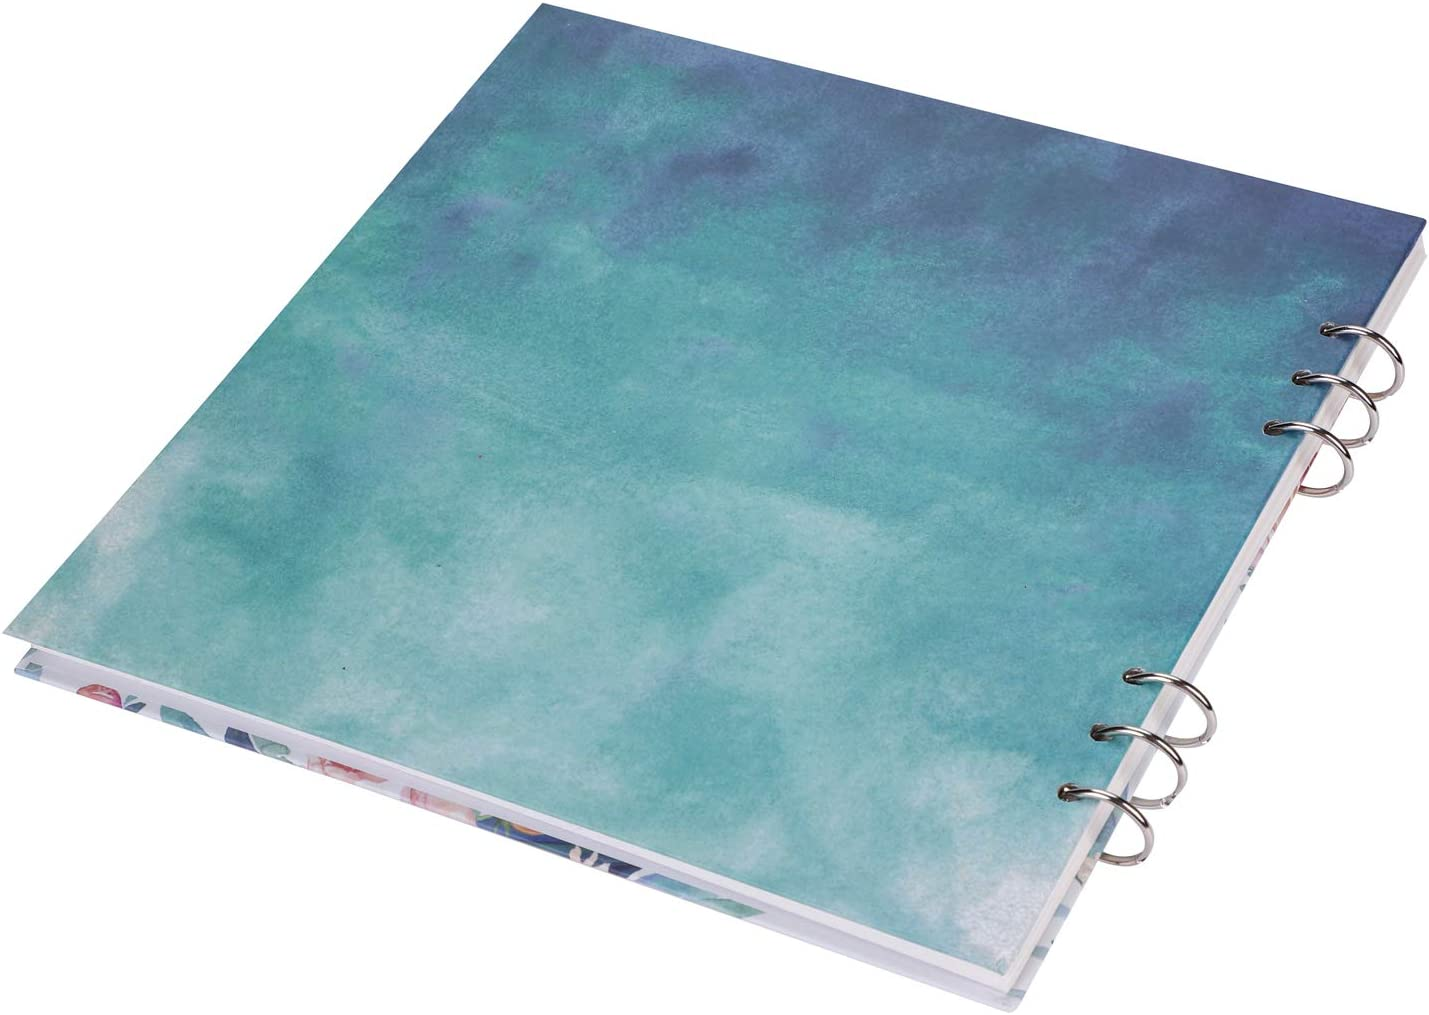 Artist Watercolor Paper Pad Pro Sketch Book Square Spiral Notebook Cold Pressed Acrylic Paper Refillable Oil Paint Pad Art Painting Template Mixed Media Watercolour Drawing Pad,10 X10 Inchs